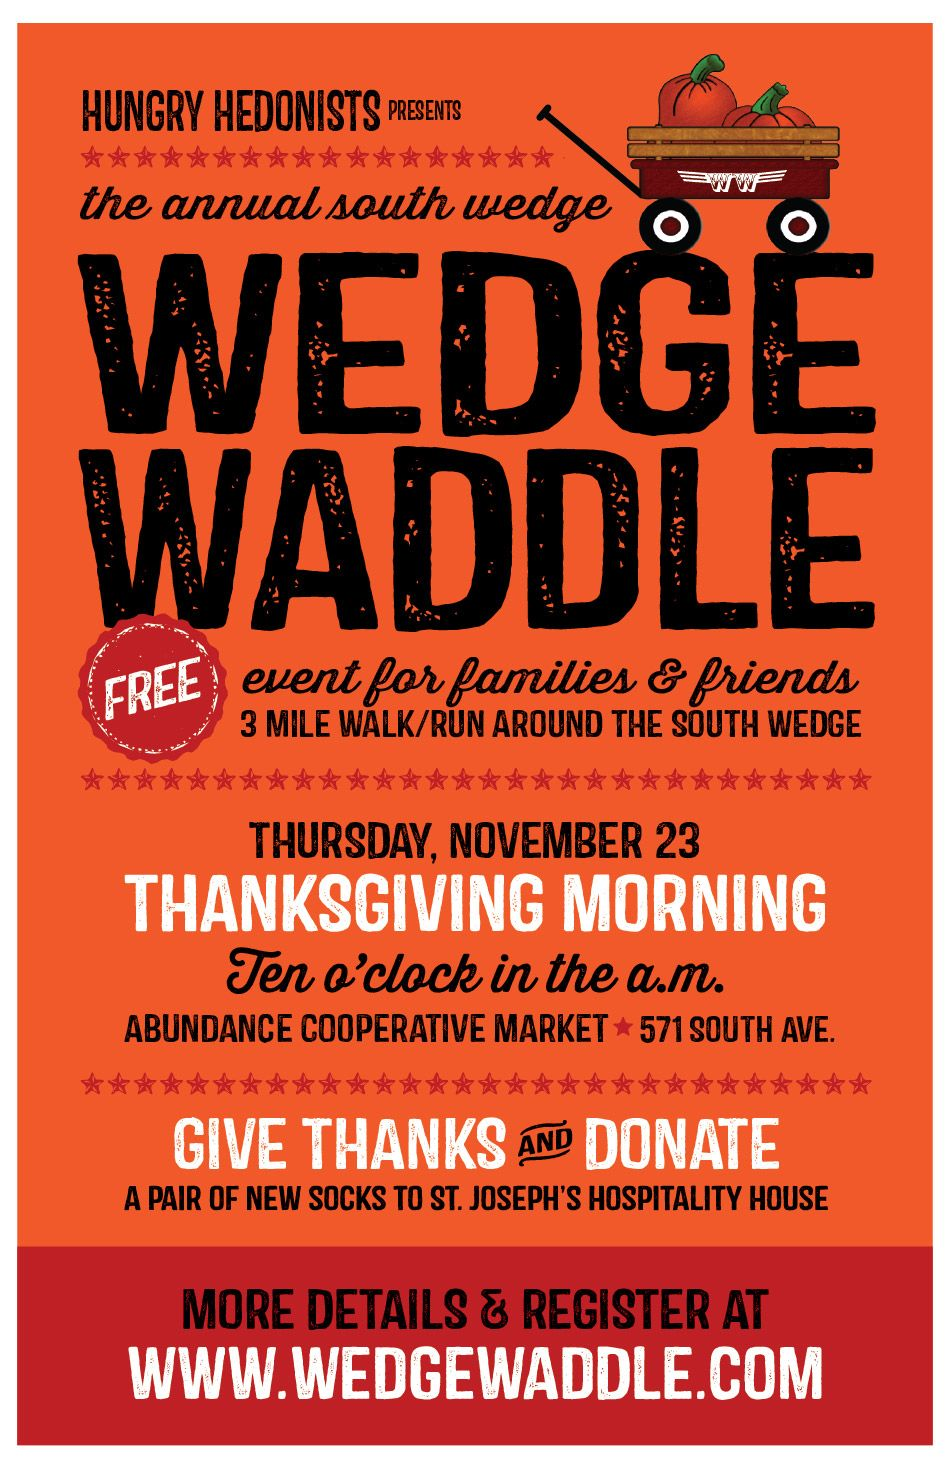 Need A Thanksgiving Morning Tradition Ours Is The Wedge Waddle Roc Thanksgiving Mornings Wedges Give Thanks